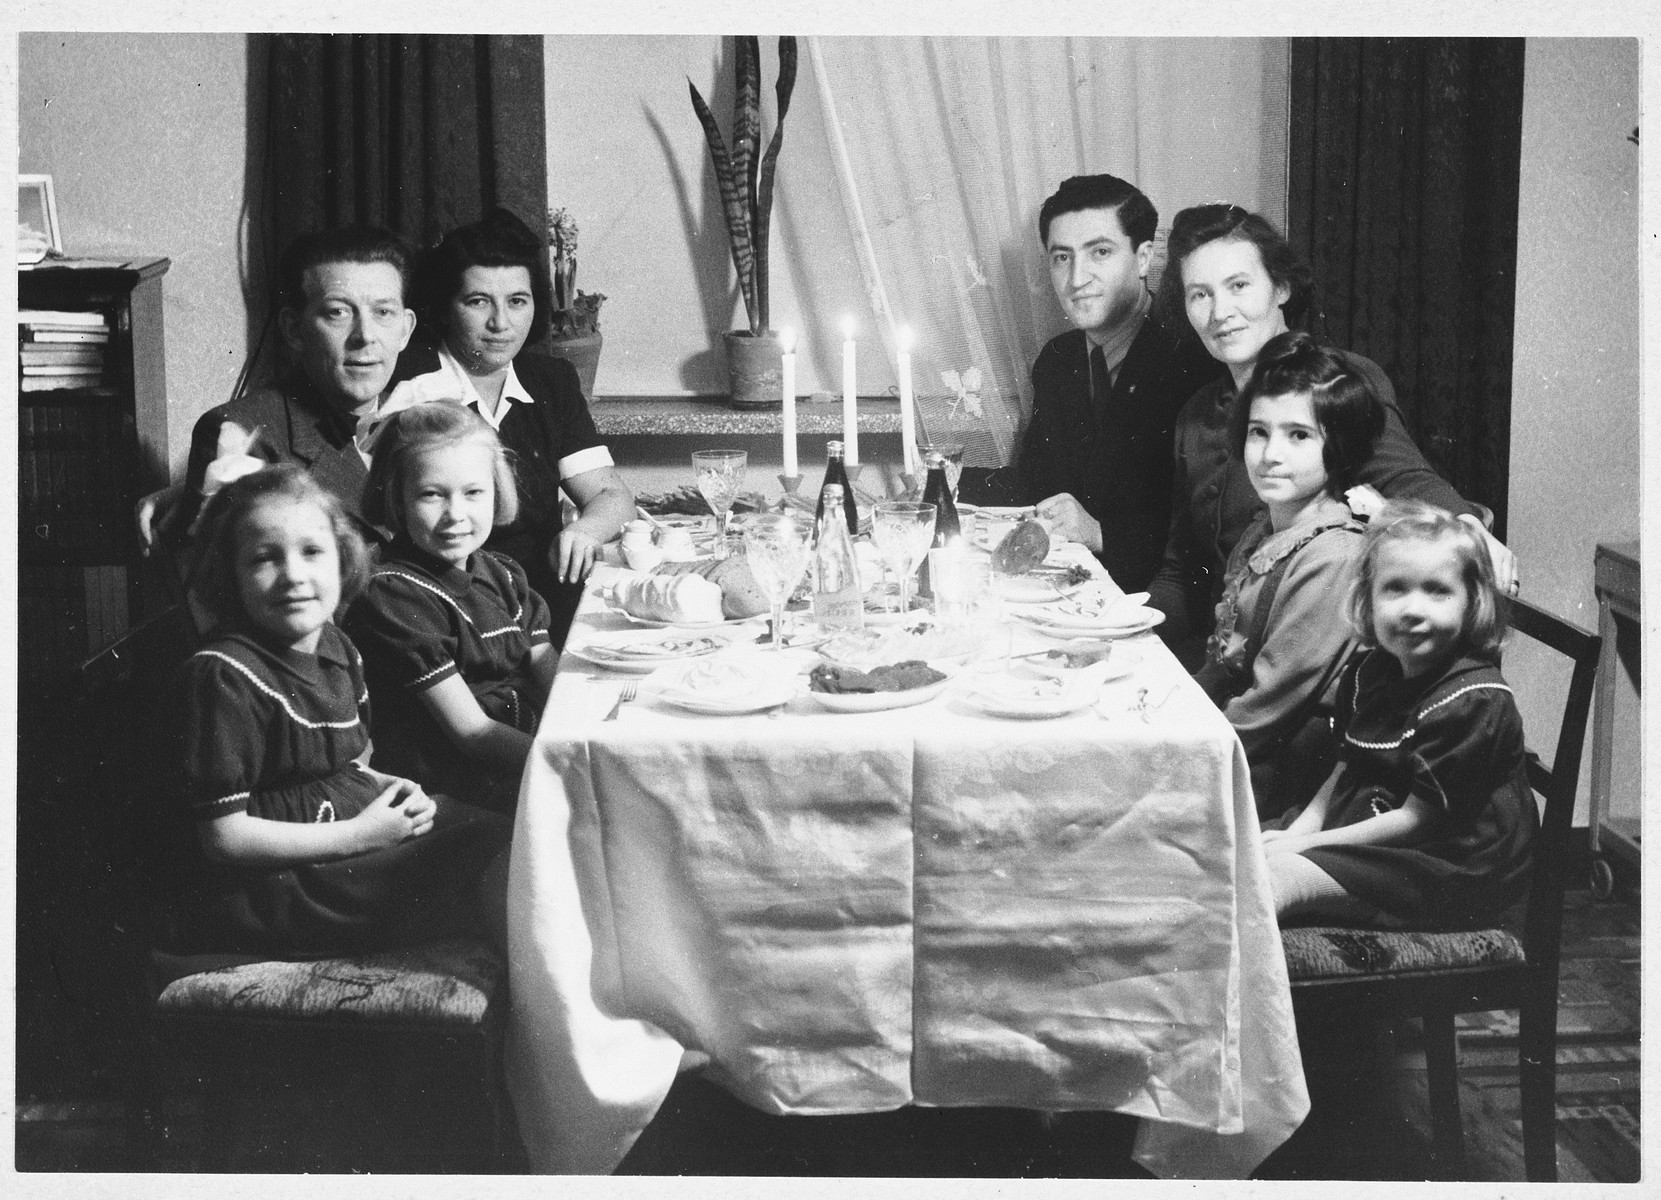 A Jewish family from Denmark who was ferried to safety in Sweden, has Christmas dinner at the home a Swedish family in Landskrona.  Pictured clockwise from the bottom left are: Johanson child, Gunn Johanson, Mr. Johanson, Kaja Geldmann, Josef Geldmann, Mrs. Johanson, Birthie Geldmann and Johanson child.  The Johanson family provided the Geldmanns with clothing and toys after their arrival in Landskrona.  Gunn Johanson was a classmate and friend of Birthie Geldmann at the Topaskolen (school).